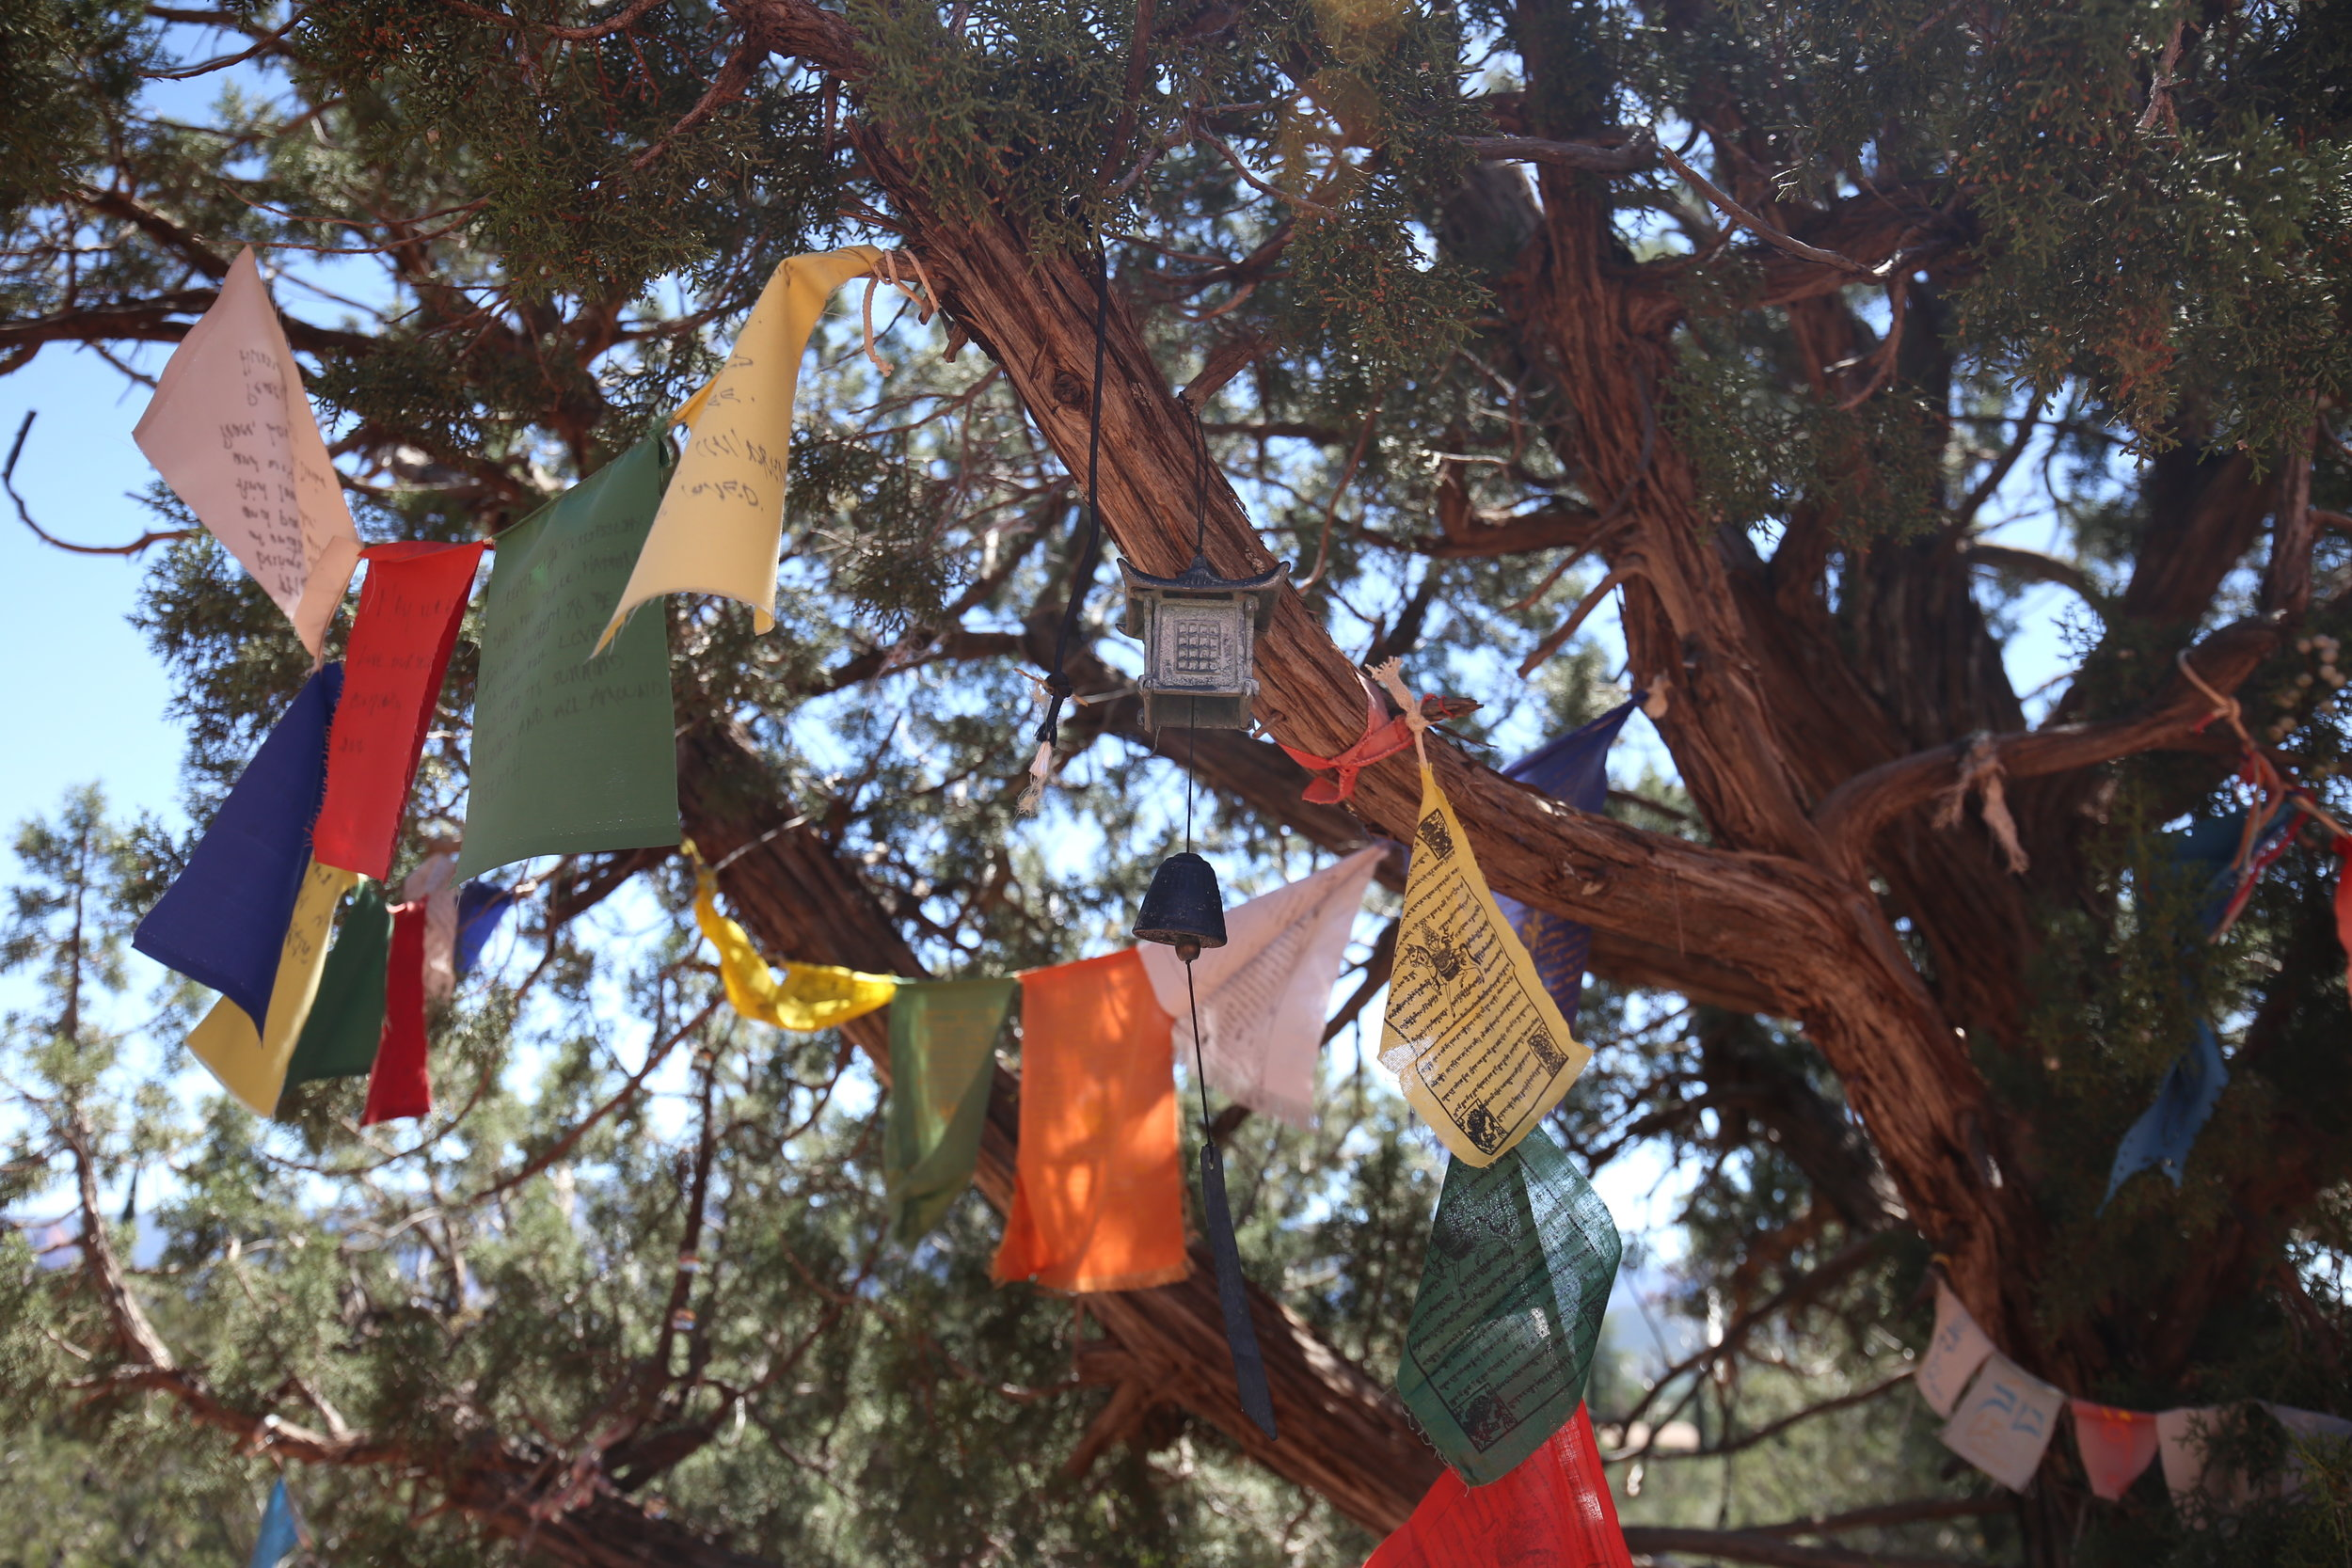 Small prayer flags on a pinion tree.